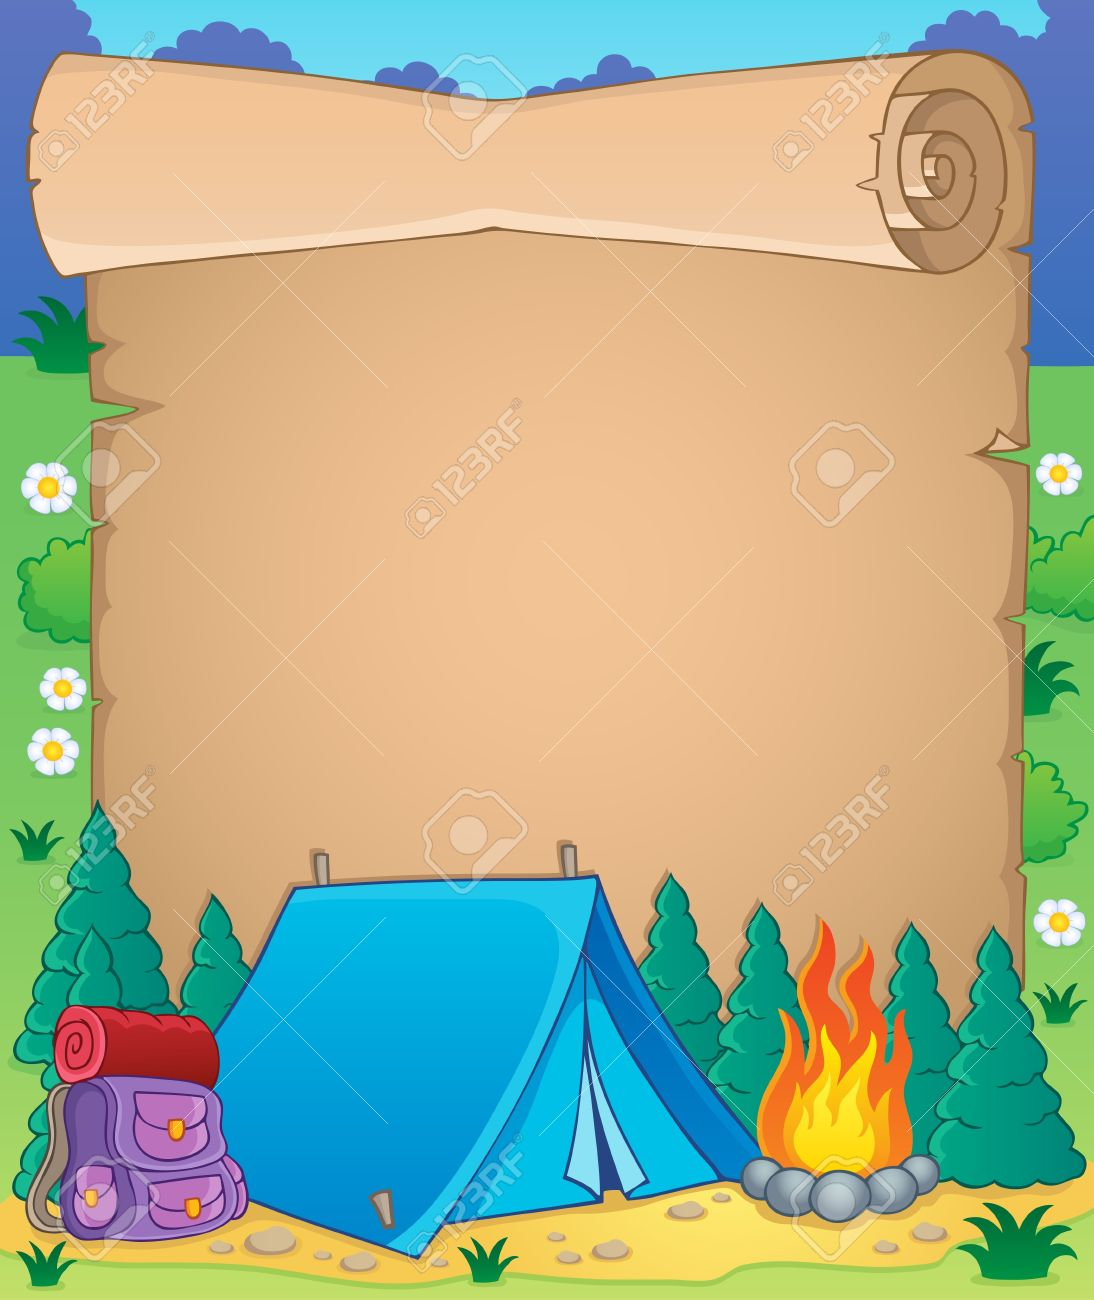 Camping Background Clipart